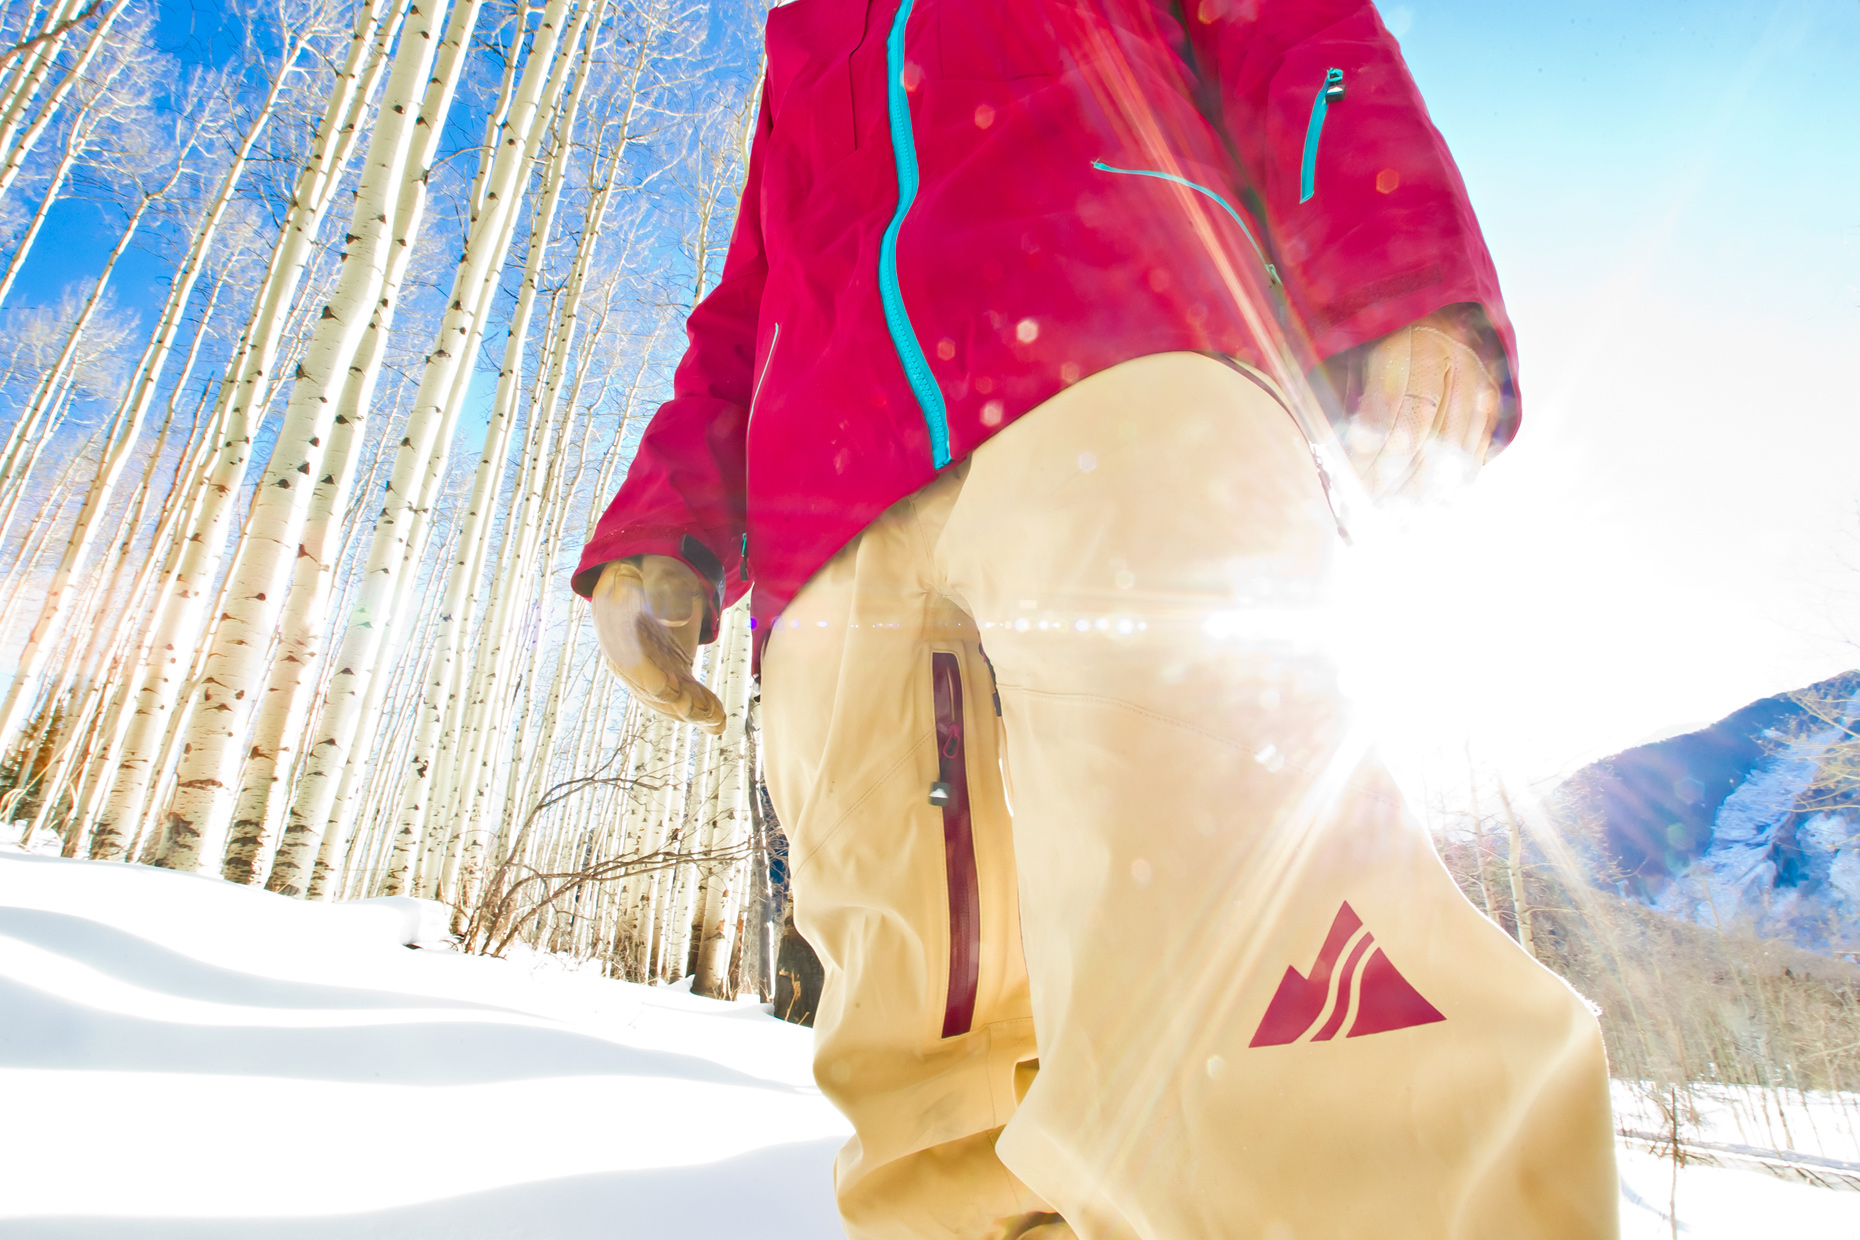 Aspen Colorado Photographer | Tomas Zuccareno | Advertising, Outdoors, Editorial, Corporate